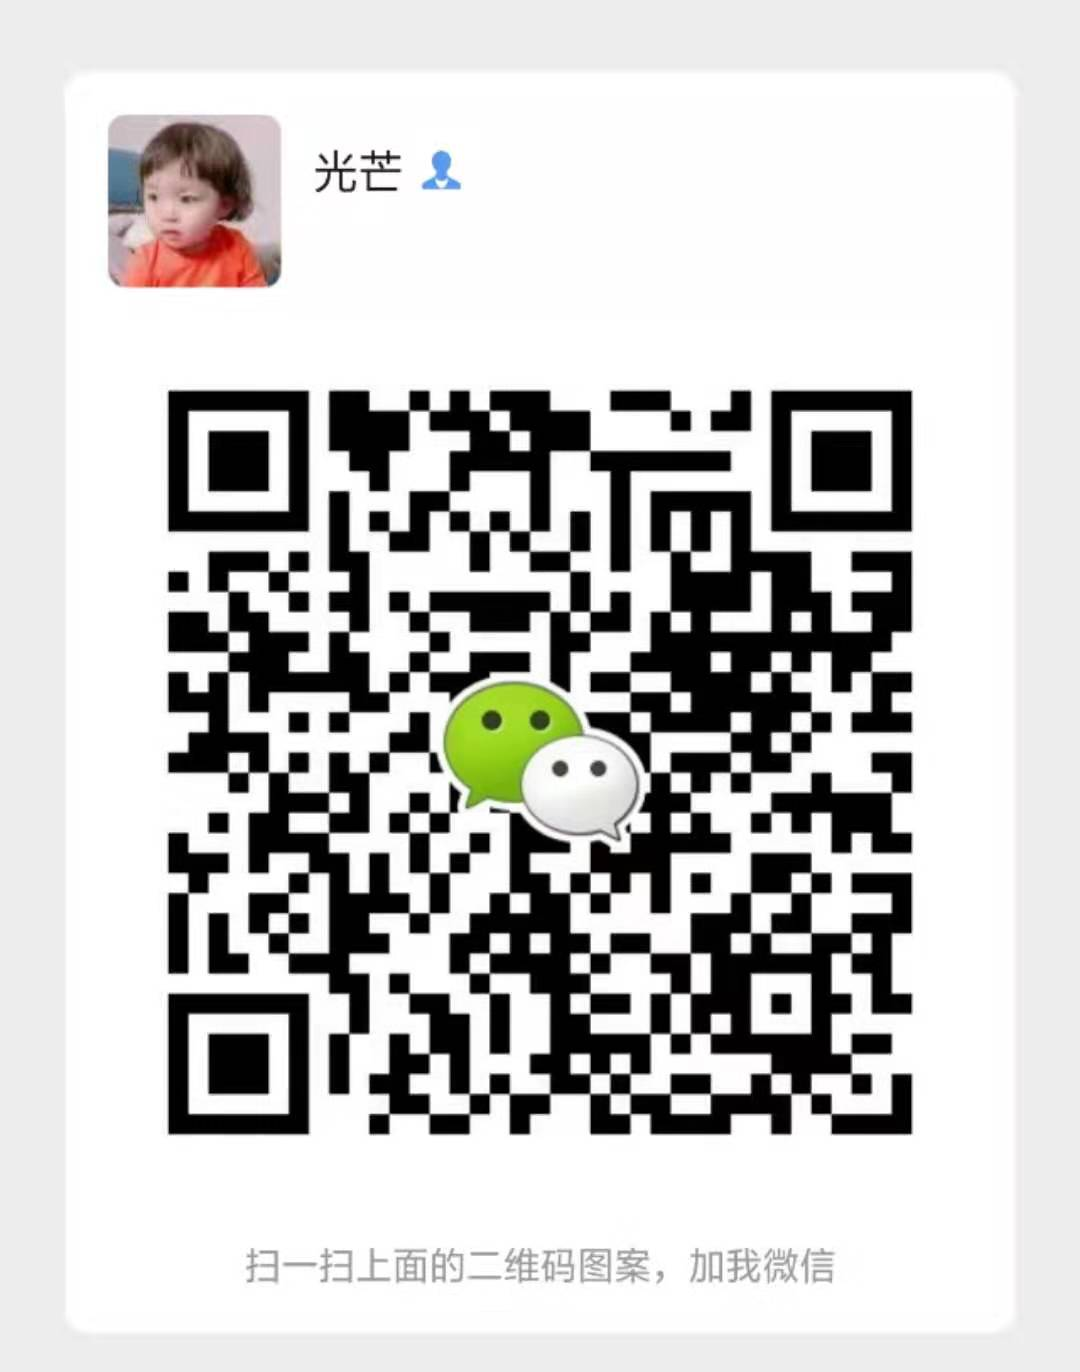 .\..\..\..\..\..\..\AppData\Local\Temp\WeChat Files\383c88e845c0b28f239013a58d832c25_.jpg